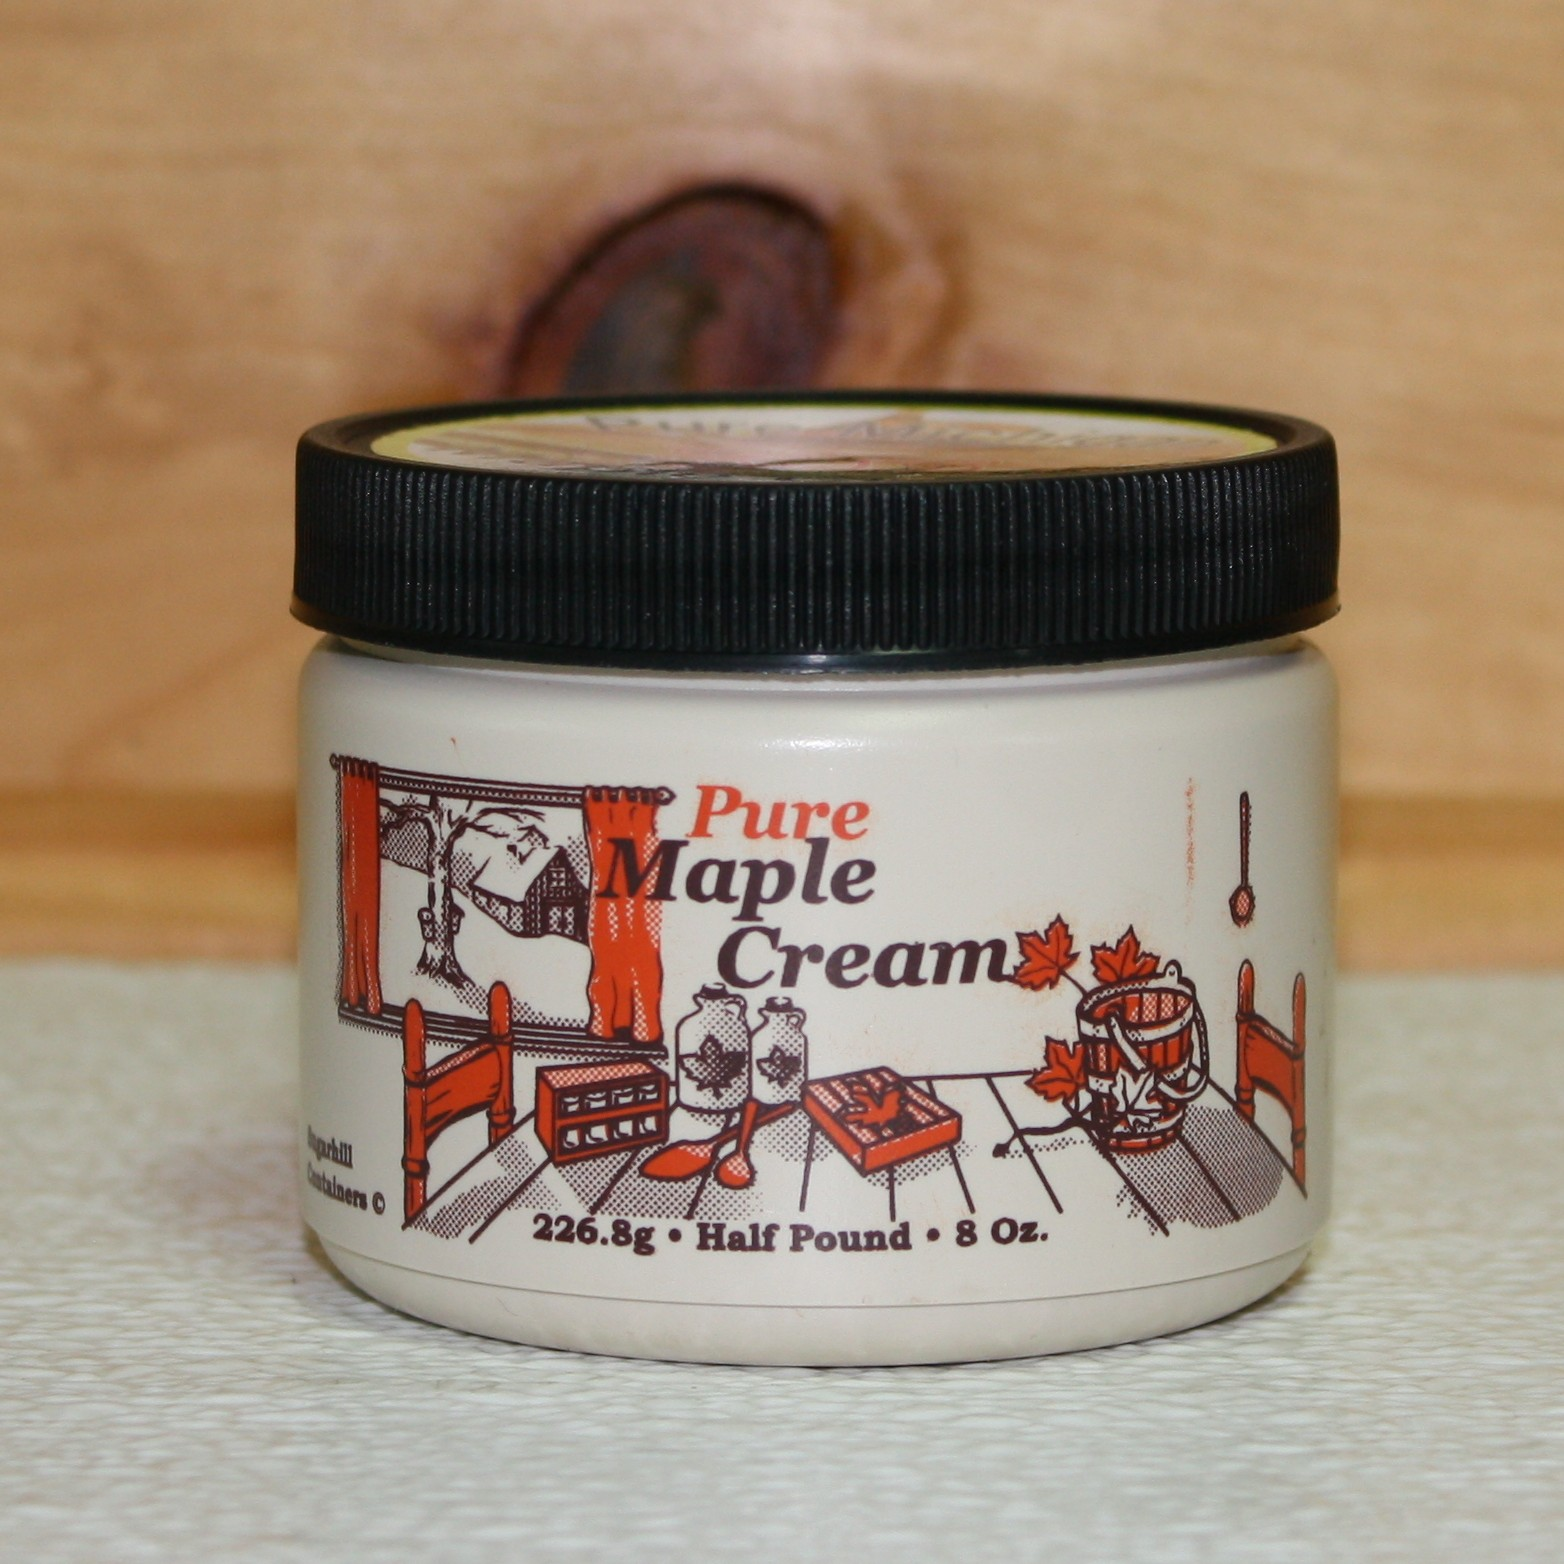 Pure Maple Cream & Butter for Sale in Michigan